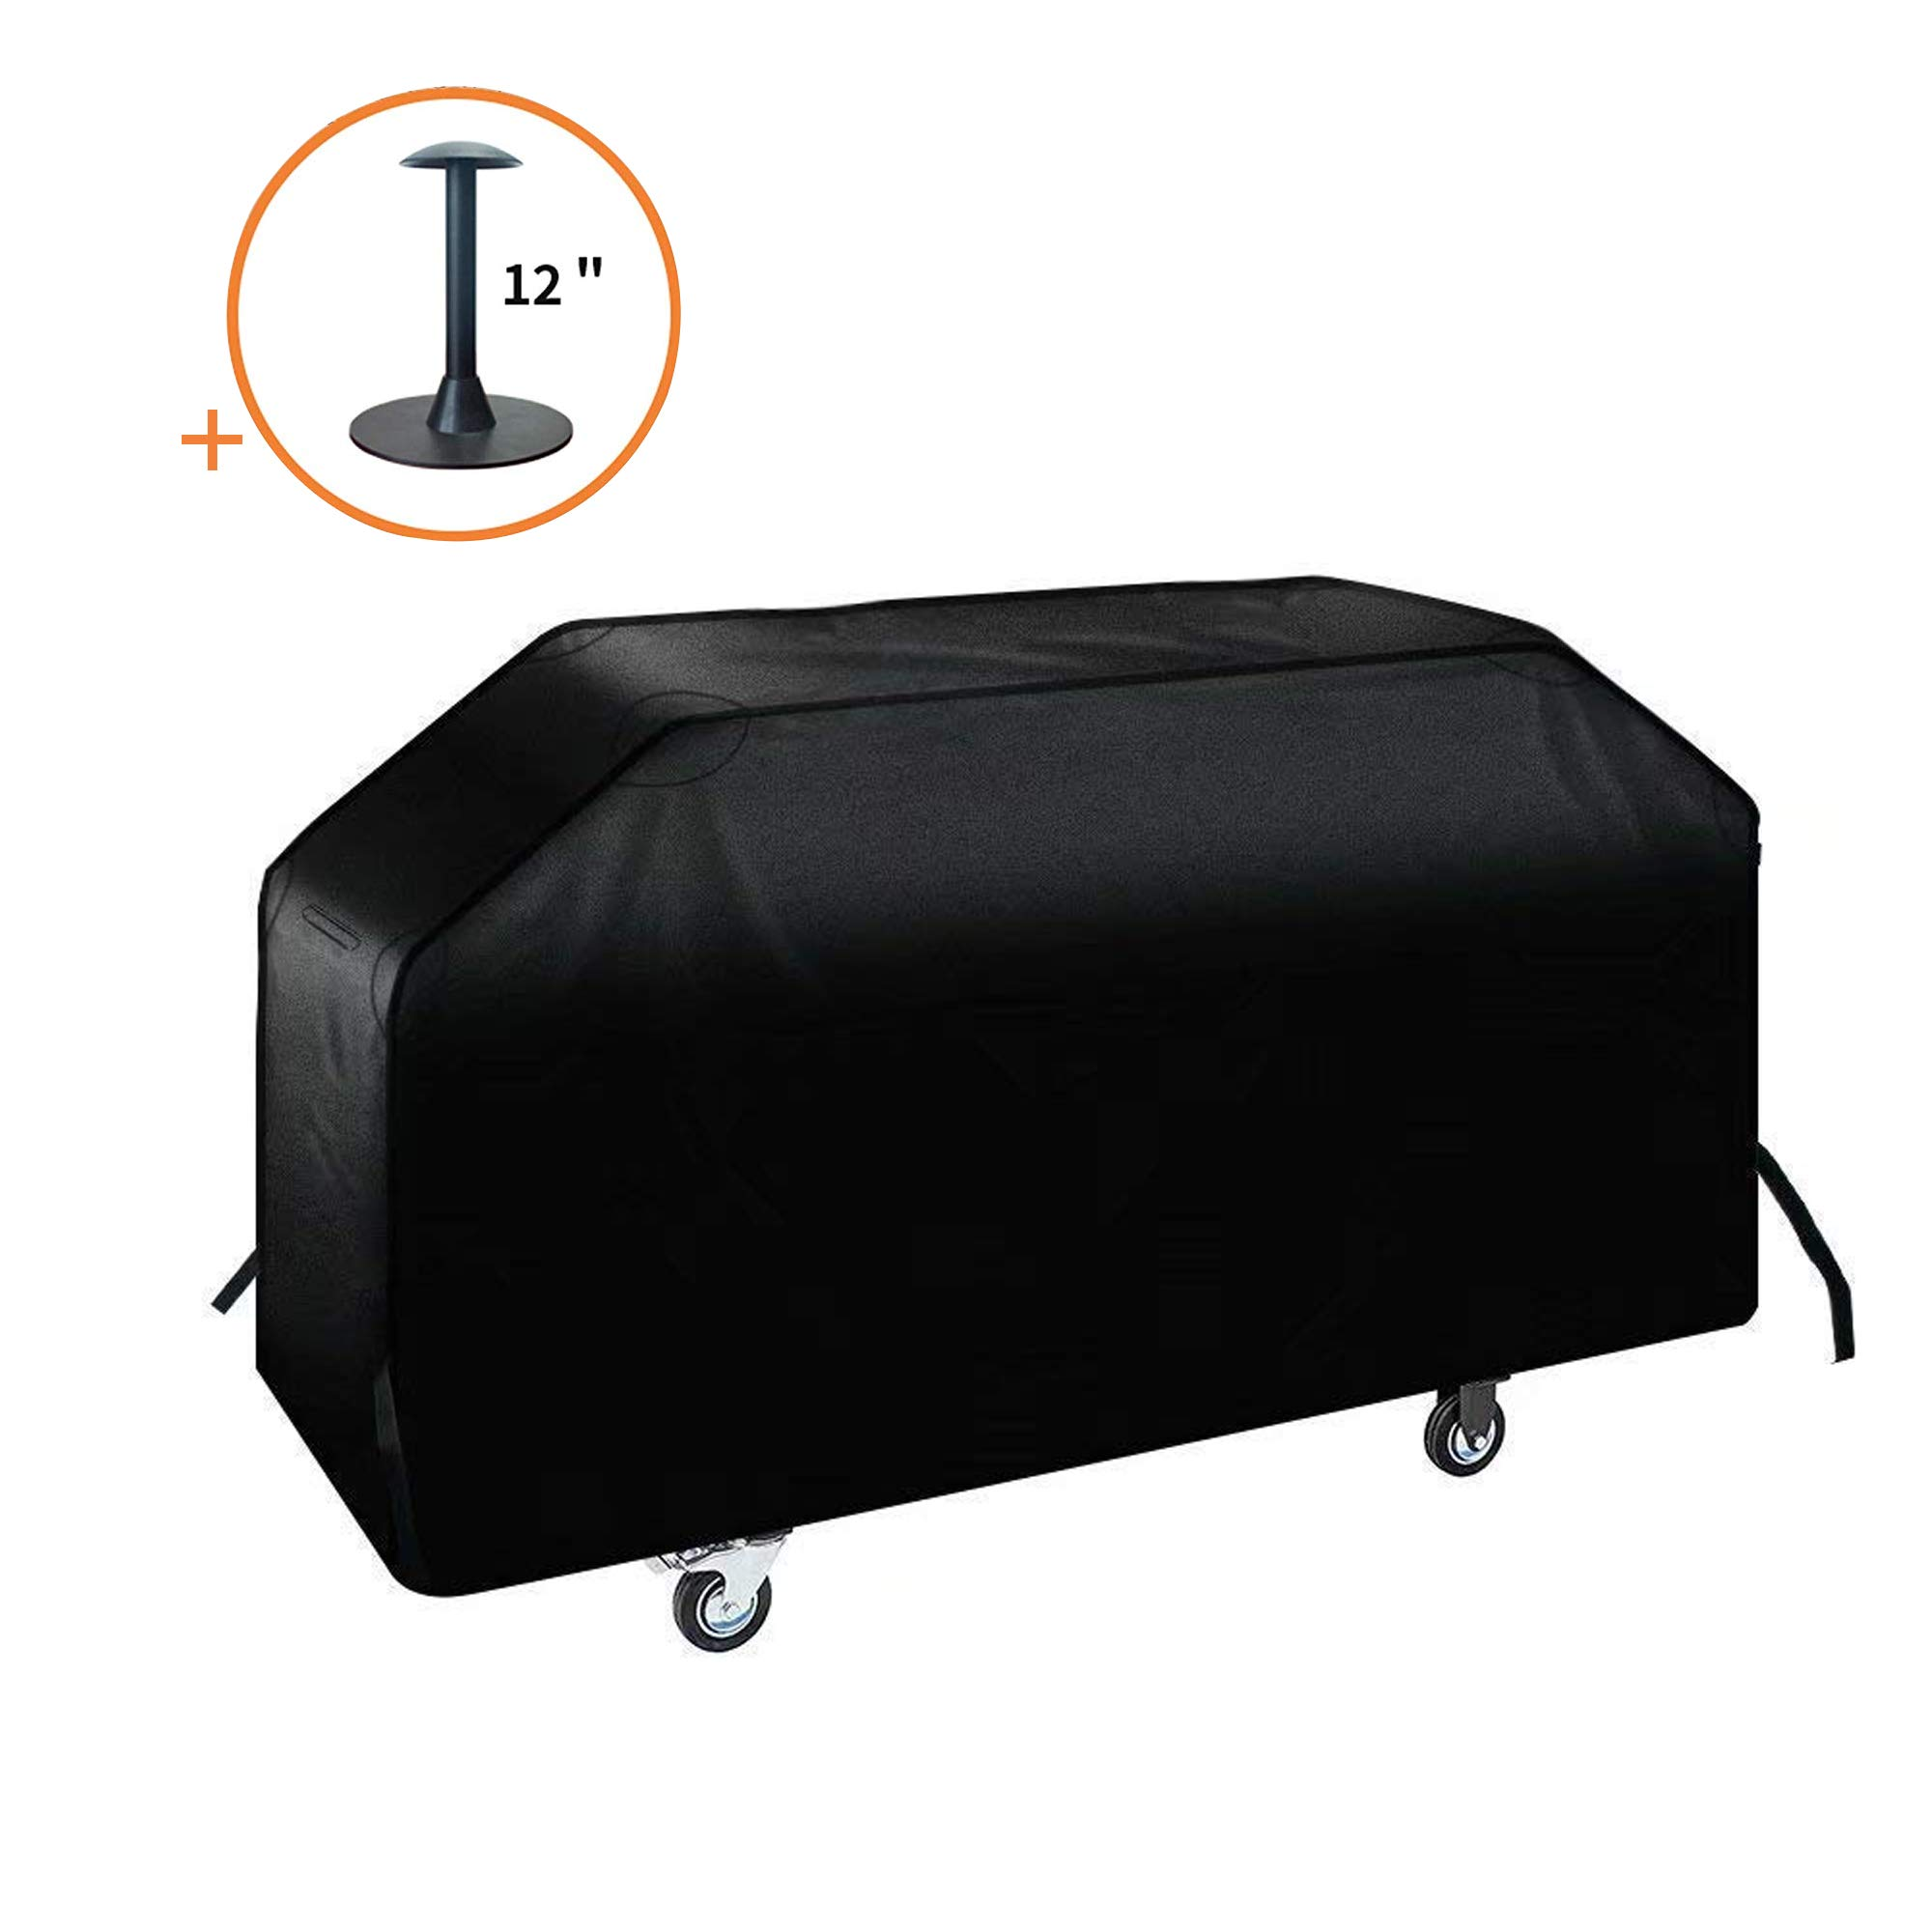 iCOVER 36 inch Griddle Cover, 600D Heavy Duty Waterproof Canvas Flat Top Gas Grill Cover for Blackstone 36'' Griddle Cooking Station Camp Chef 600 Barbecue Cover with Support Pole by i COVER